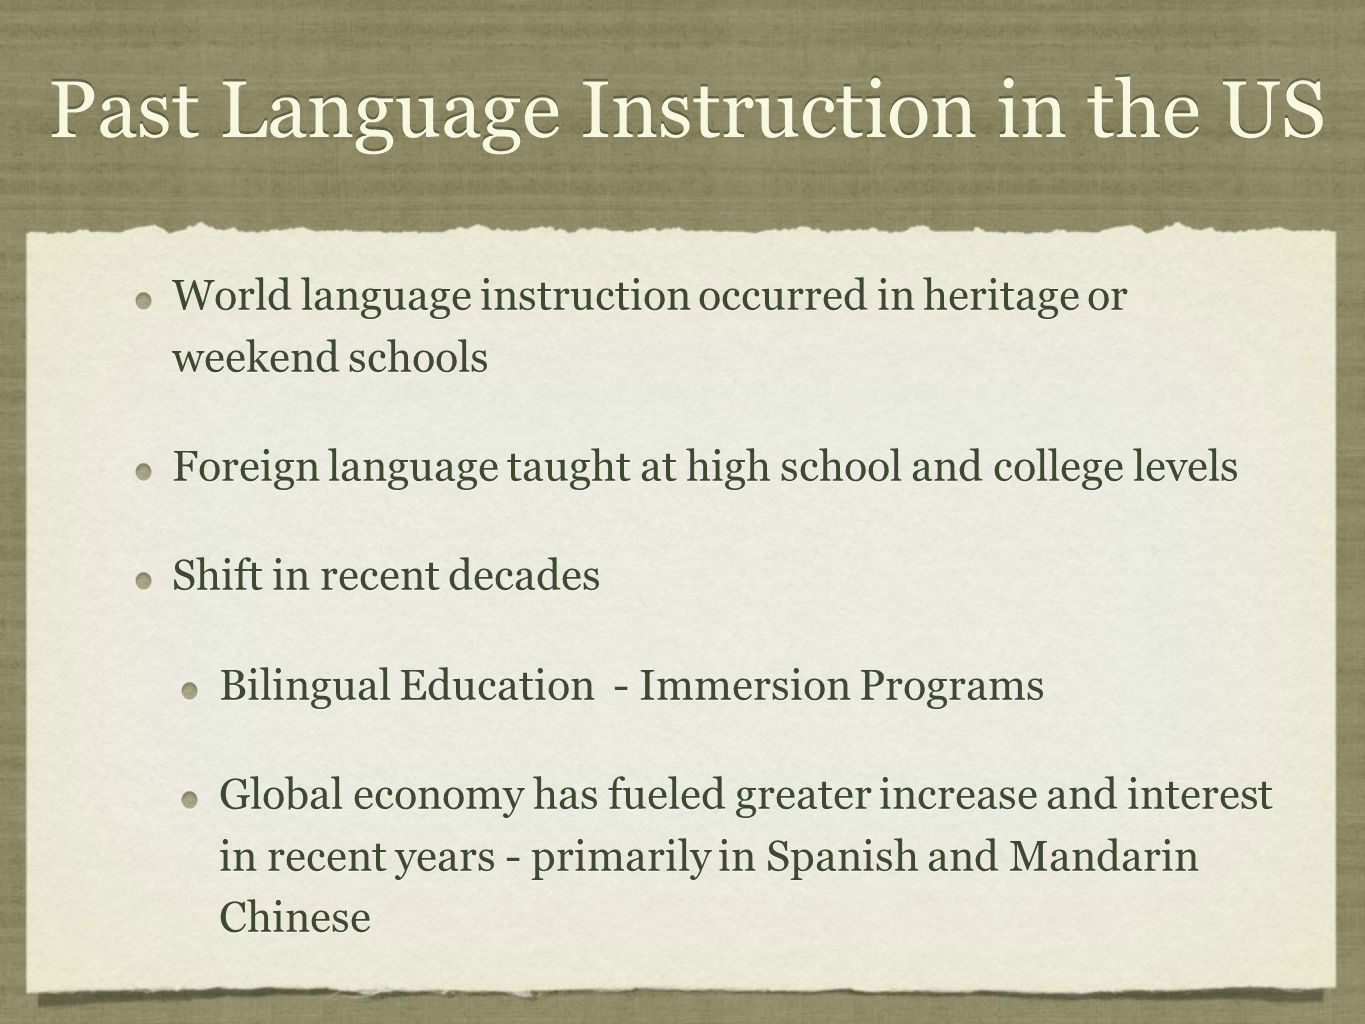 Past Language Instruction in the US World language instruction occurred in heritage or weekend schools Foreign language taught at high school and college levels Shift in recent decades Bilingual Education - Immersion Programs Global economy has fueled greater increase and interest in recent years - primarily in Spanish and Mandarin Chinese World language instruction occurred in heritage or weekend schools Foreign language taught at high school and college levels Shift in recent decades Bilingual Education - Immersion Programs Global economy has fueled greater increase and interest in recent years - primarily in Spanish and Mandarin Chinese